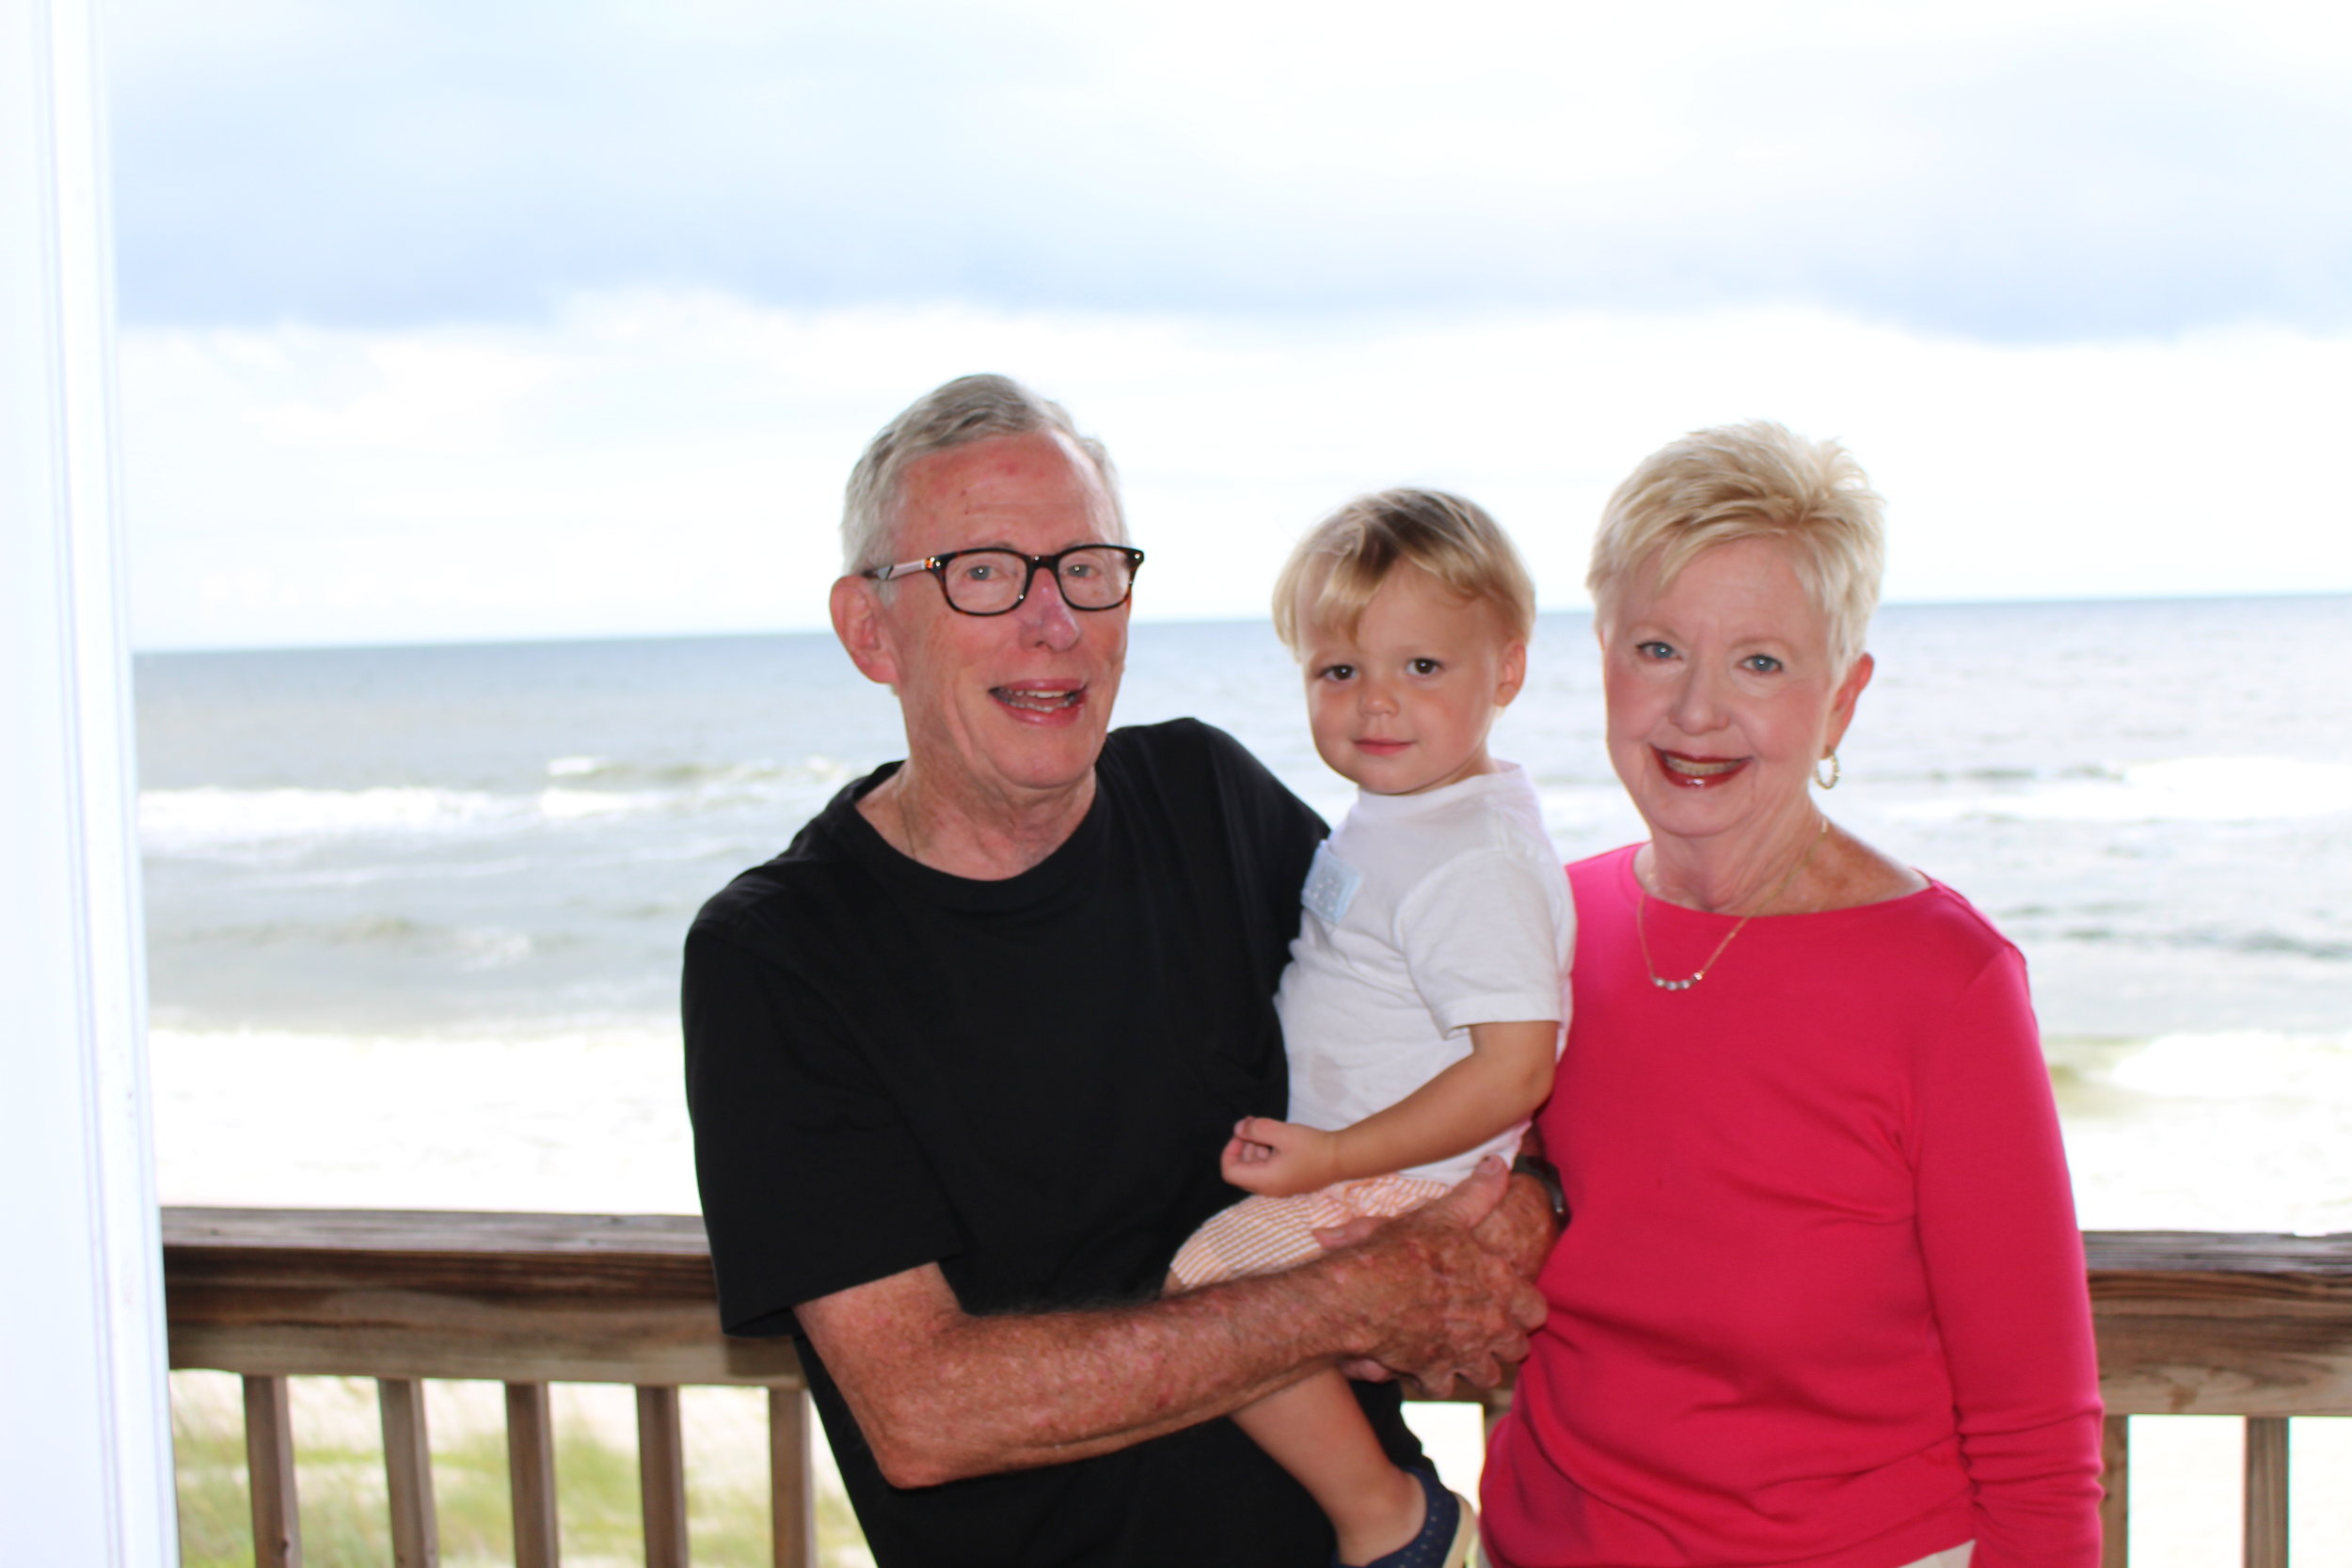 grandparents at beach.JPG